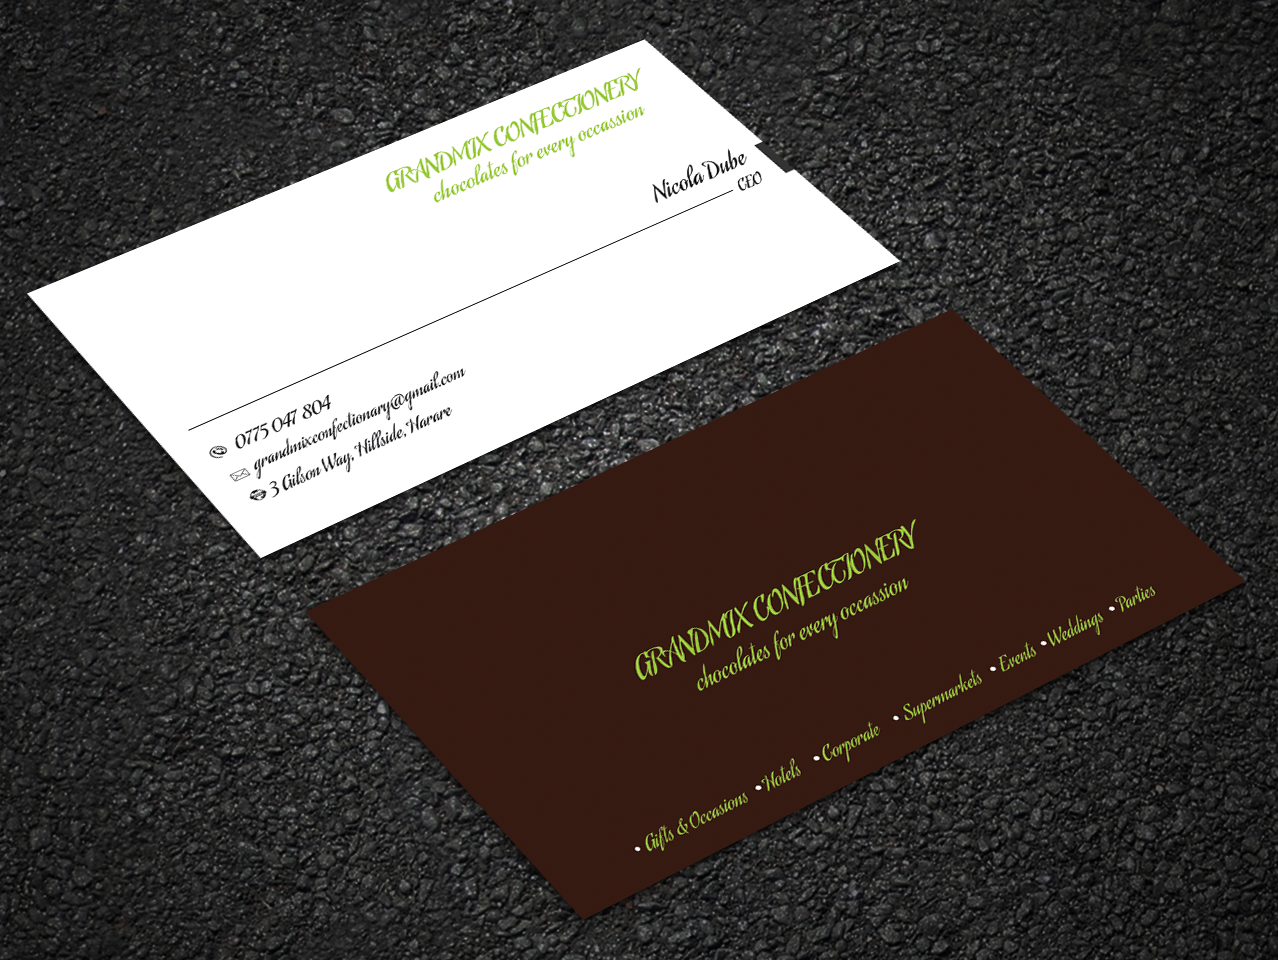 Bold serious food production business card design for a company by bold serious food production business card design for a company in zambia design 18283657 reheart Choice Image